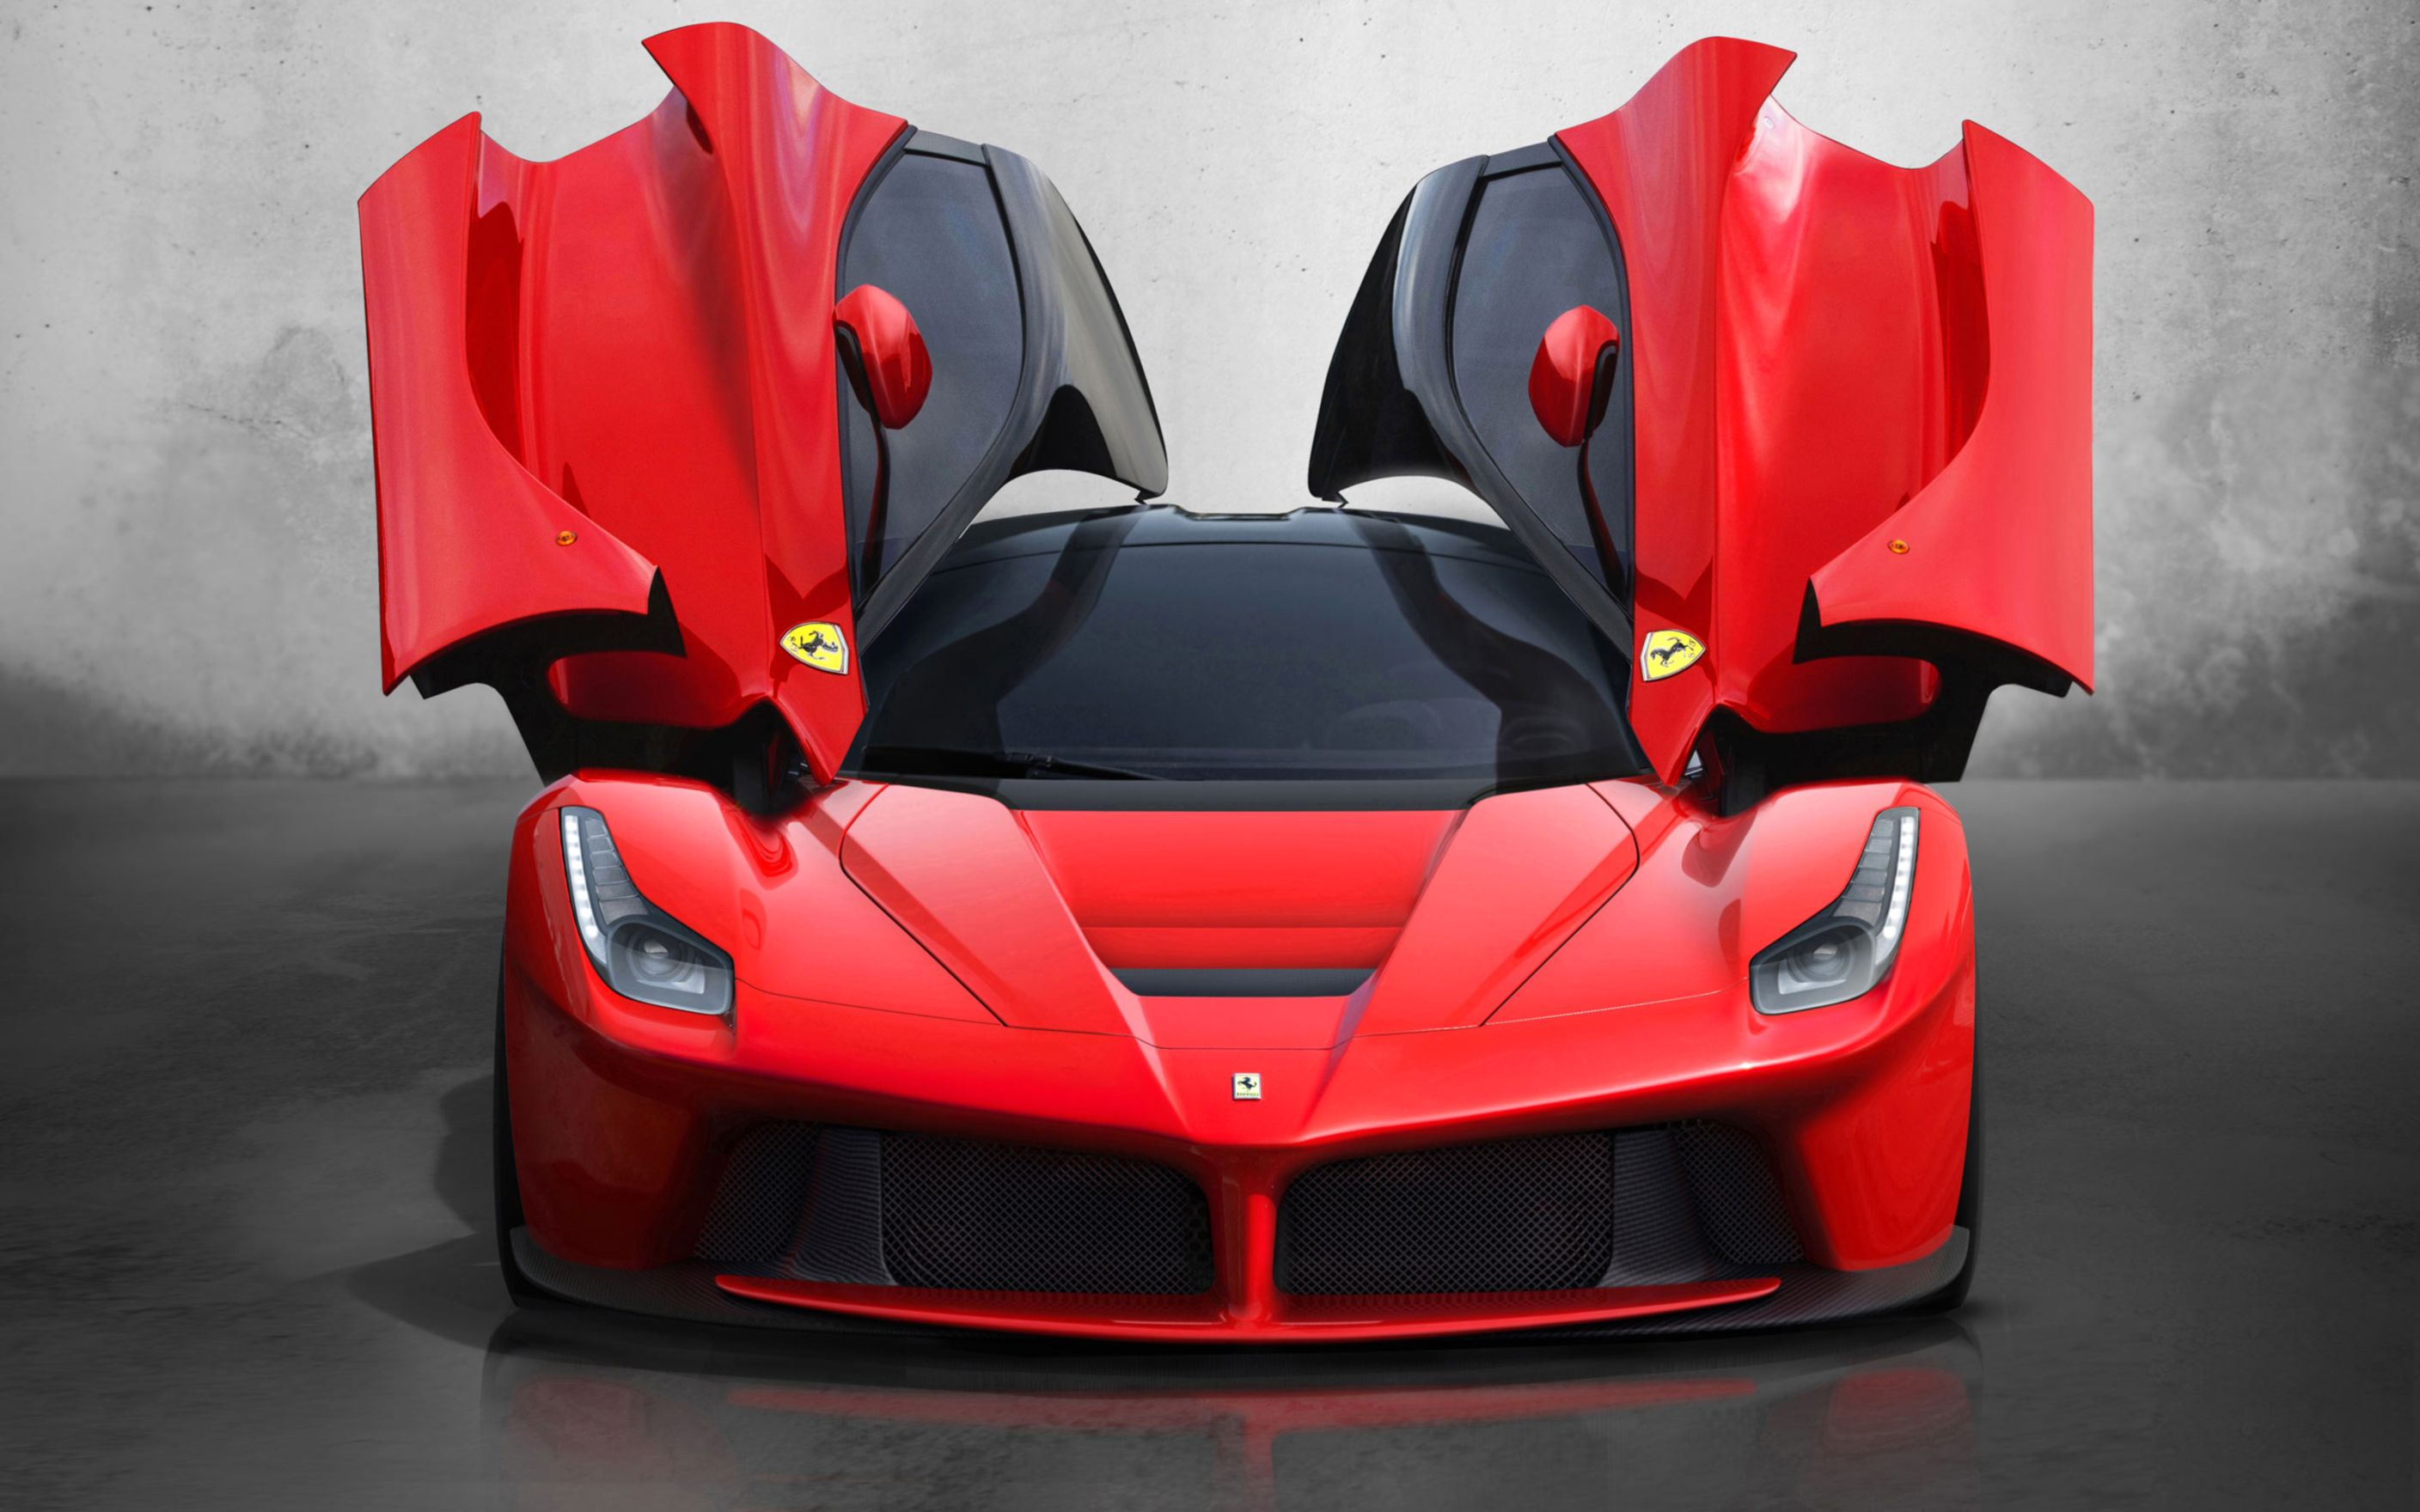 Download free HD Ferrari Laferrari Wide Wallpaper, image